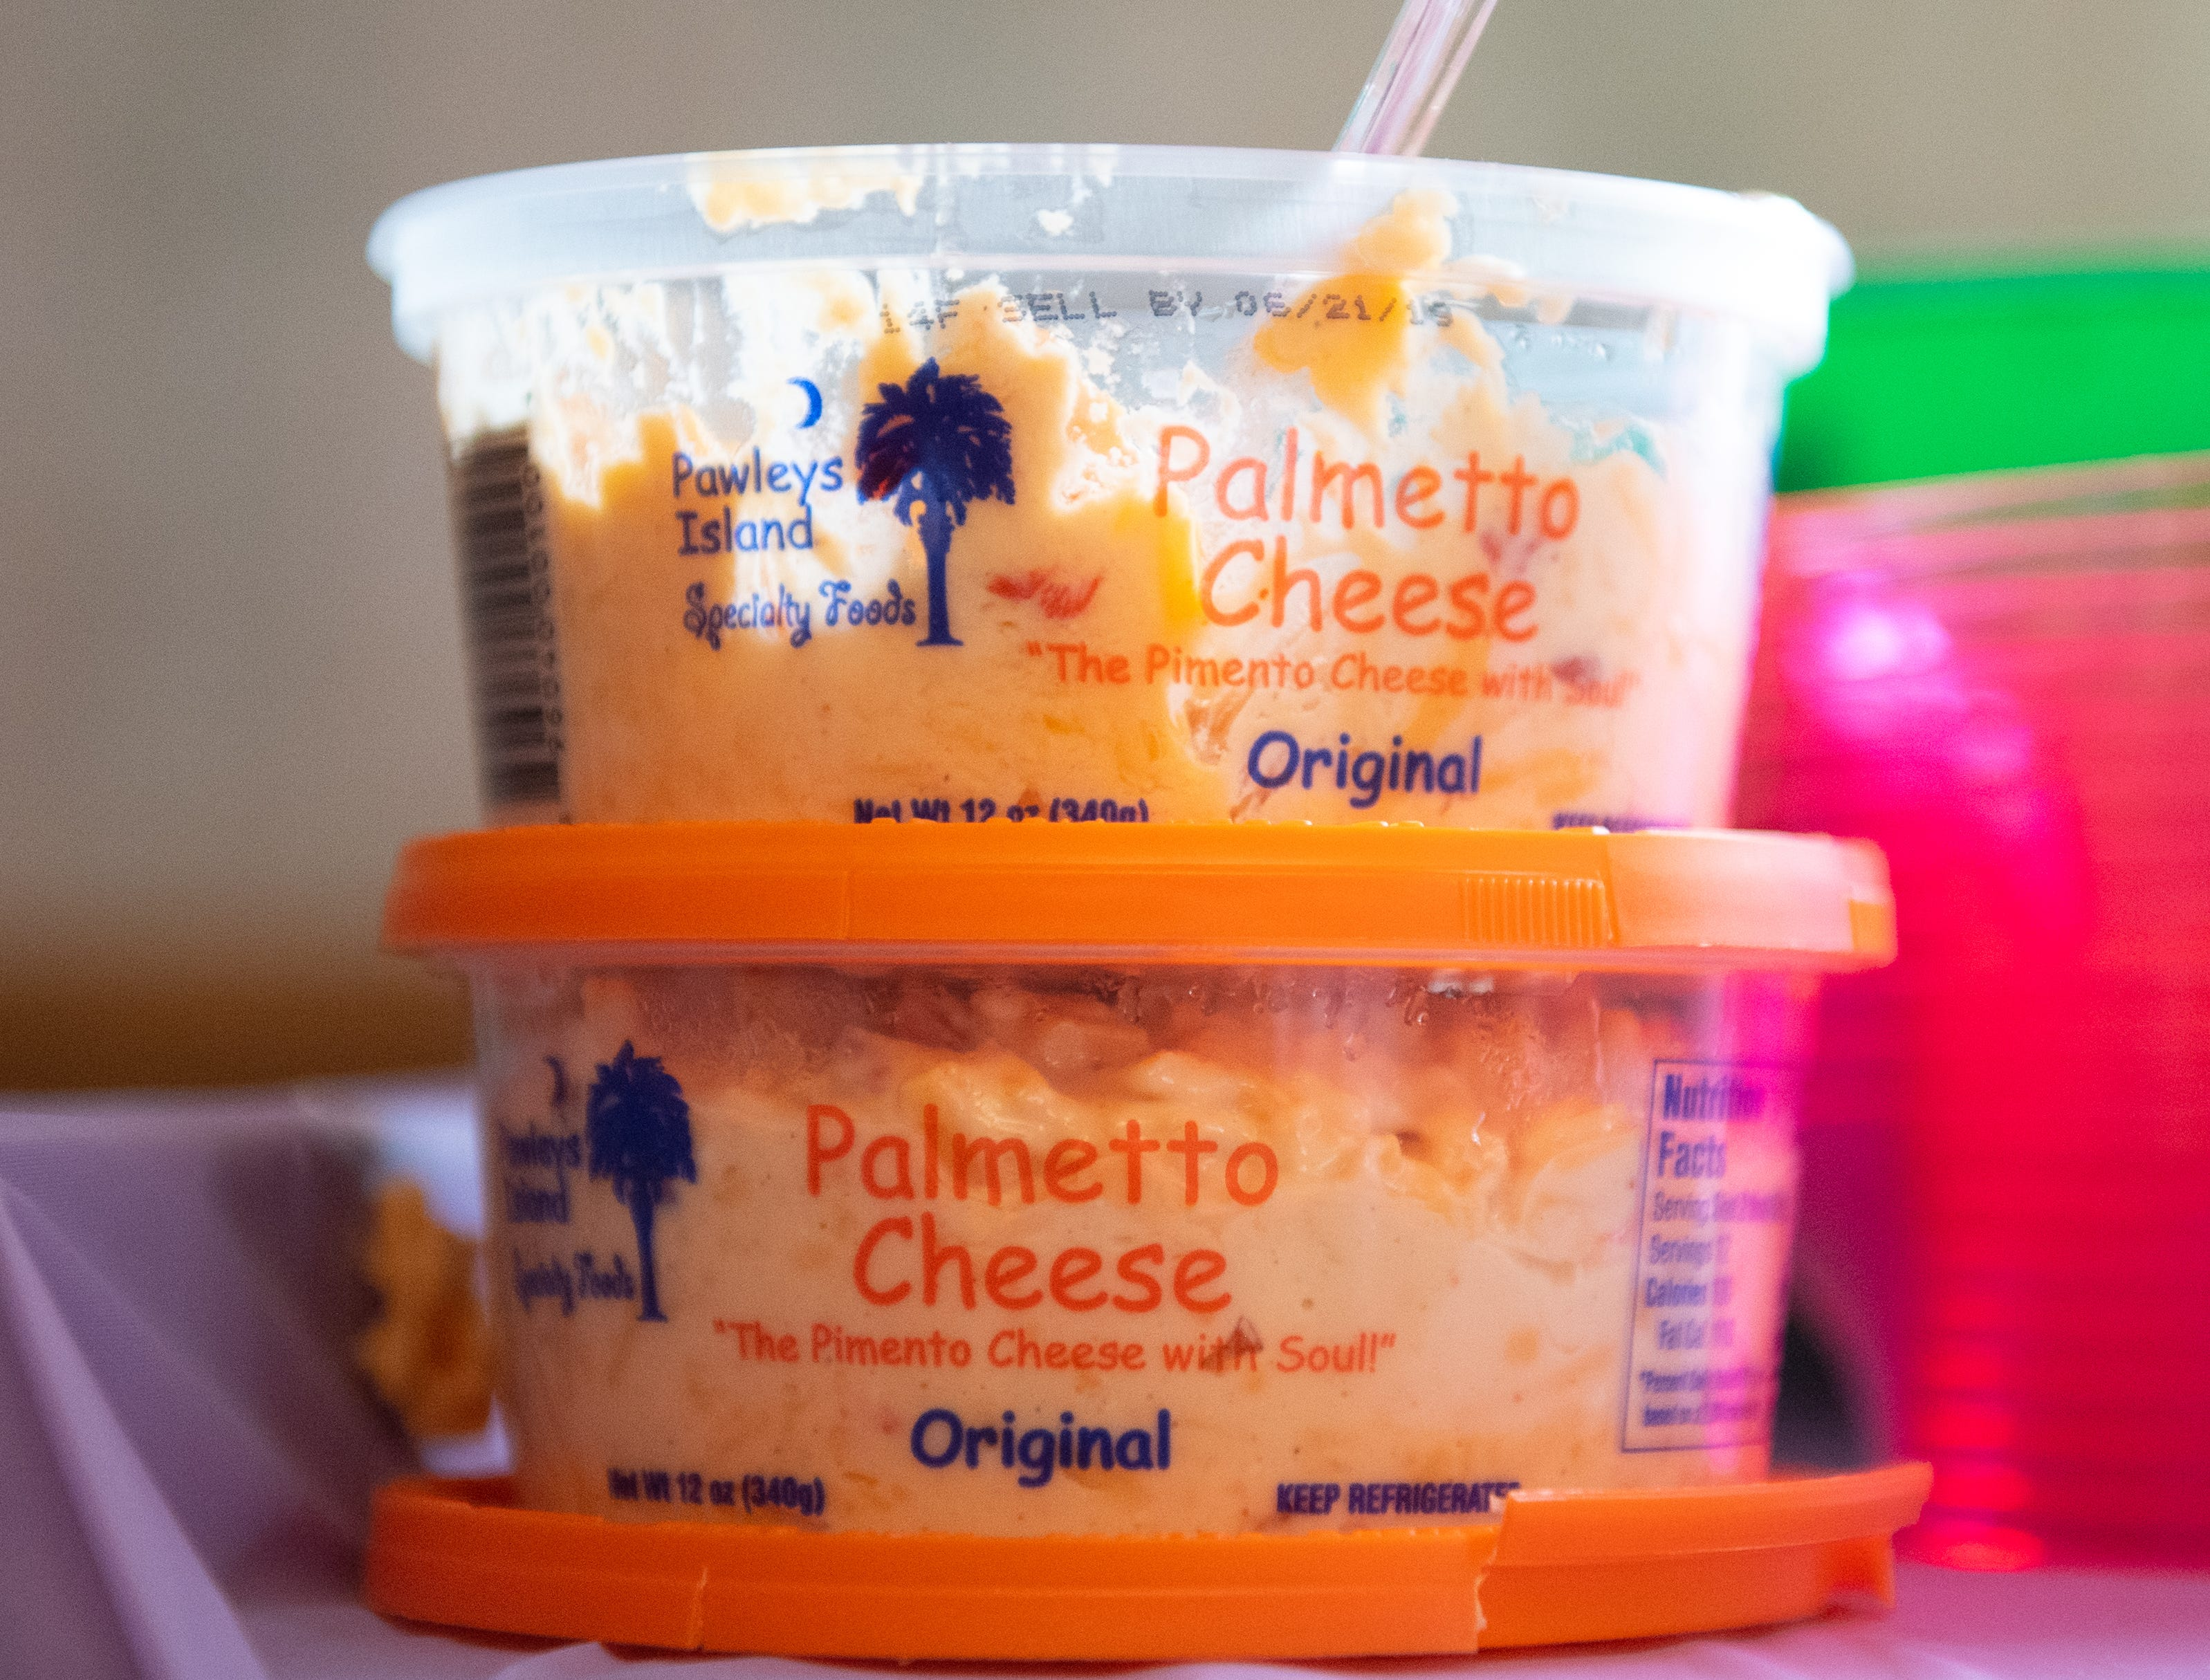 Palmetto cheese is Ann Diehl's favorite cheese and the party has plenty of it, April 5, 2019.